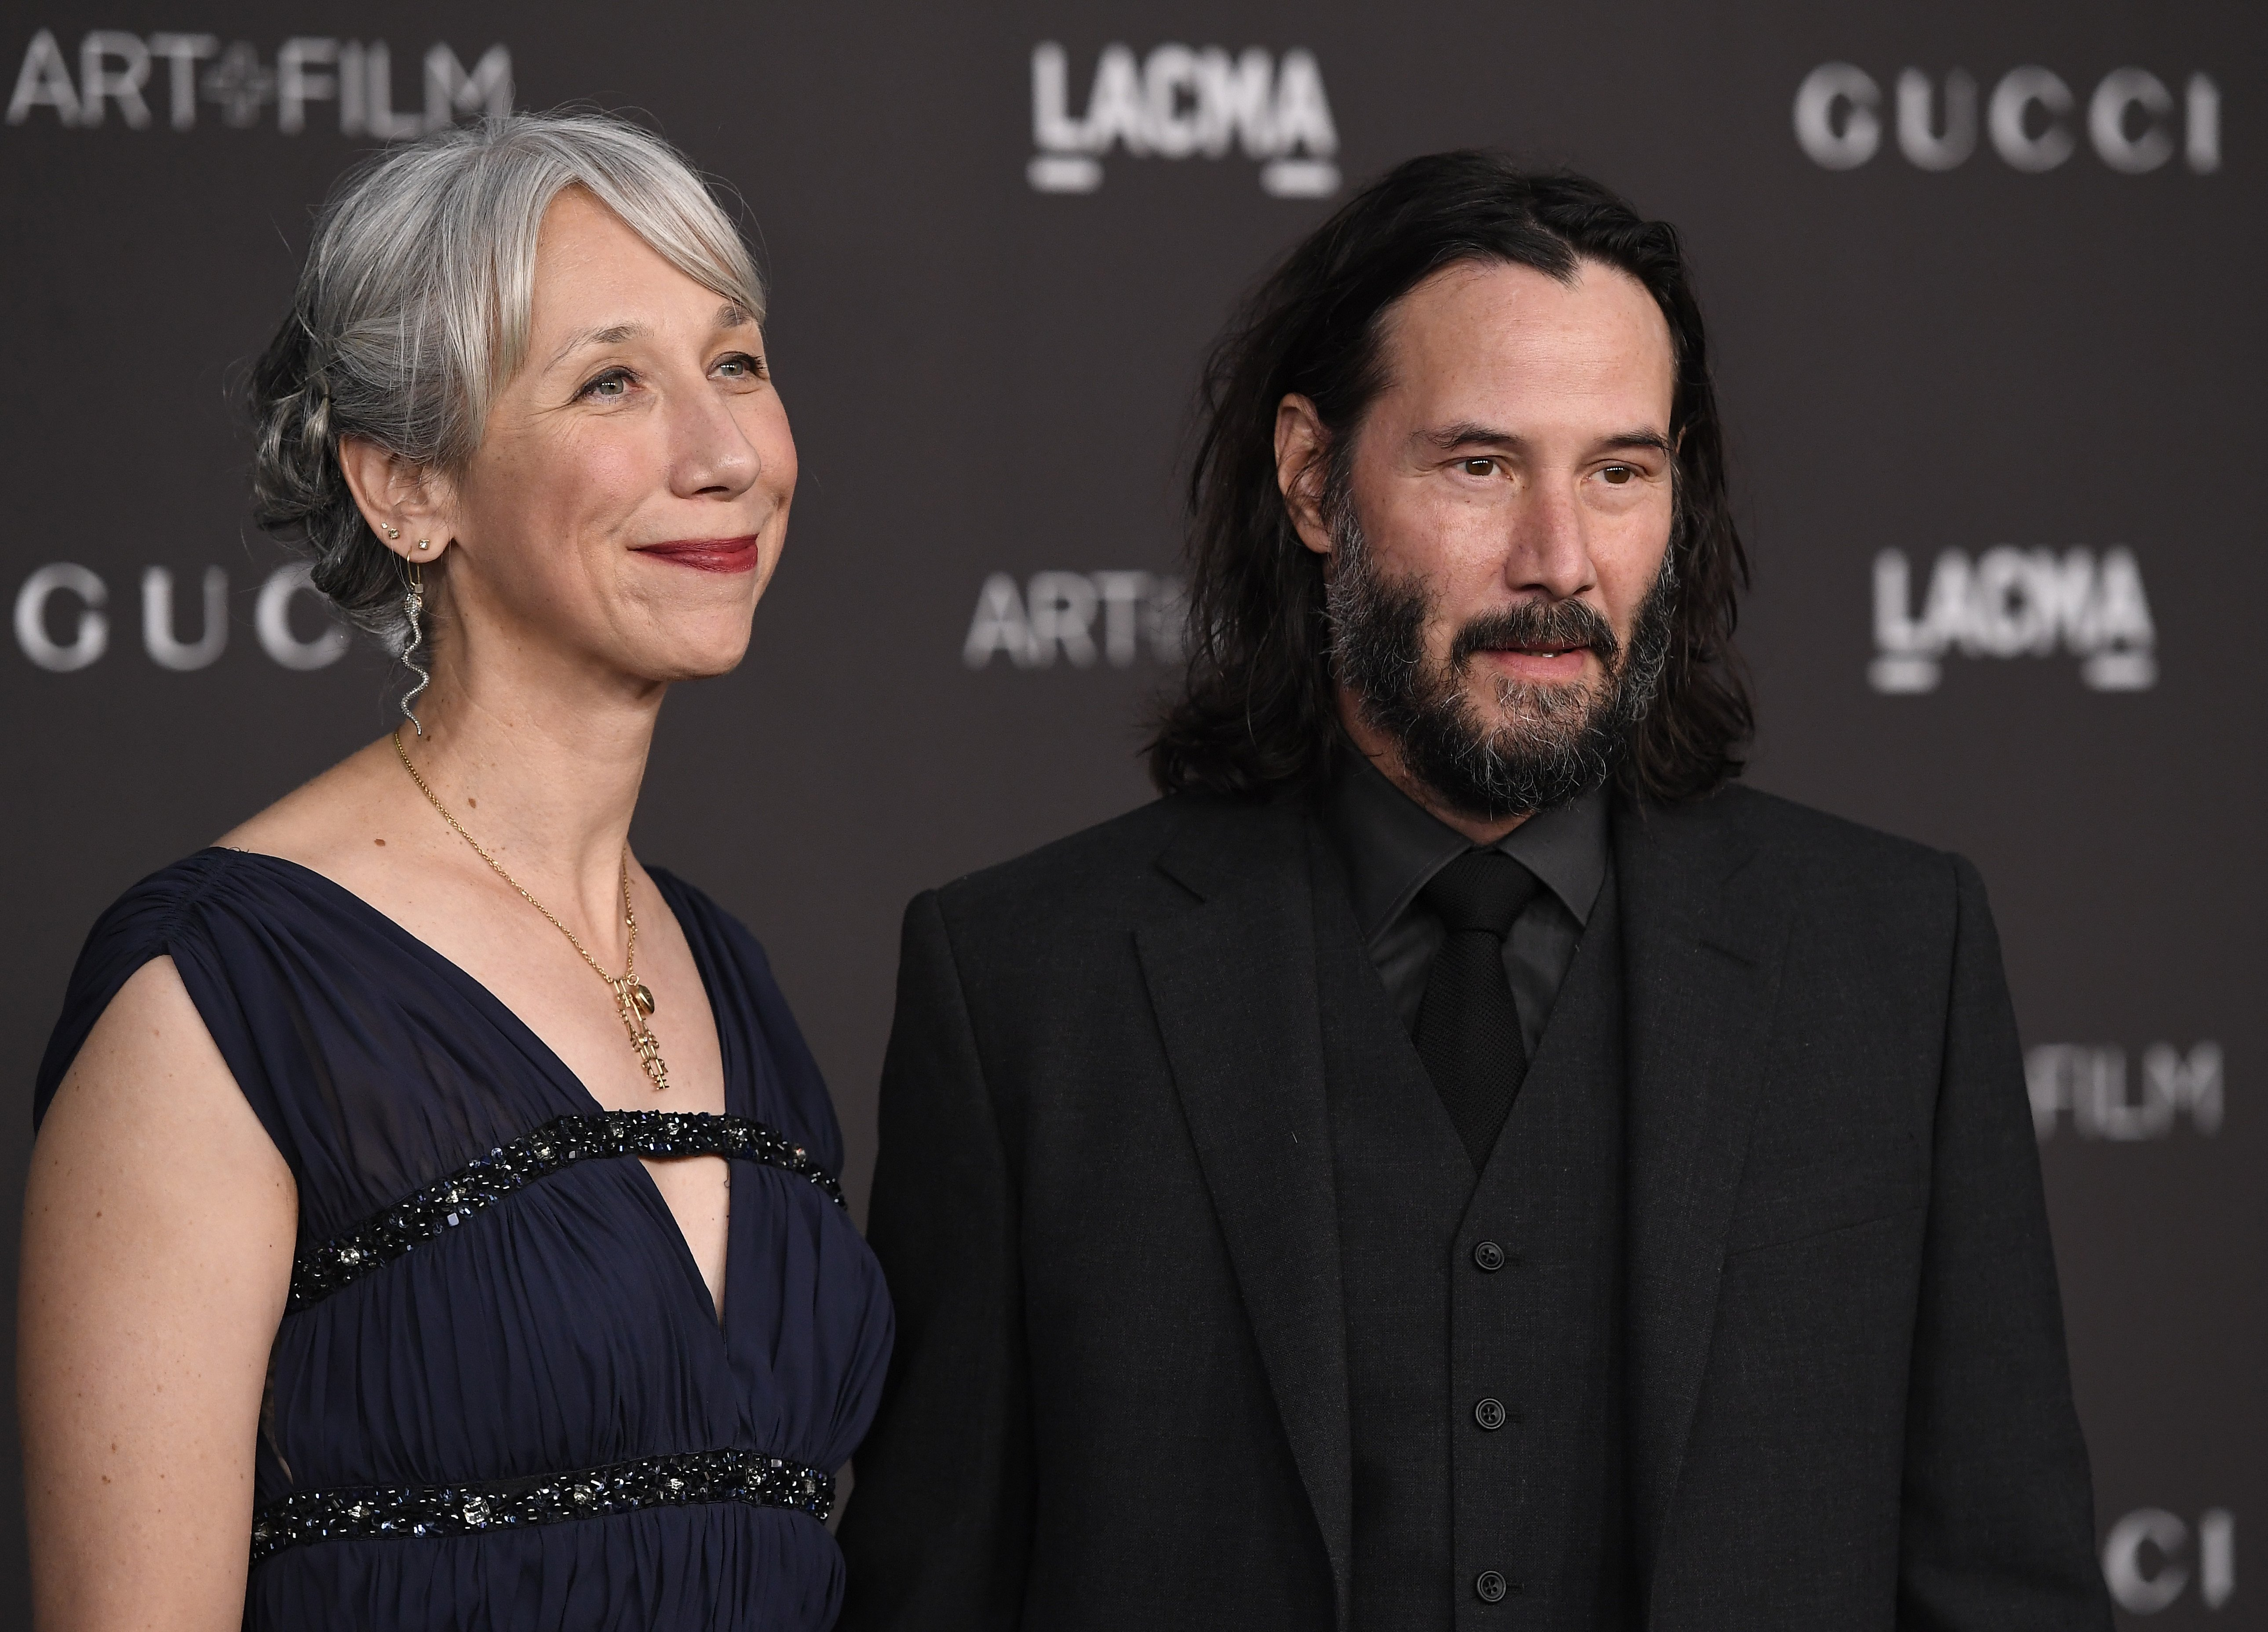 Alexandra Grant and Keanu Reeves attend the 2019 LACMA 2019 Art + Film Gala on November 02, 2019, in Los Angeles, California. | Source: Getty Images.